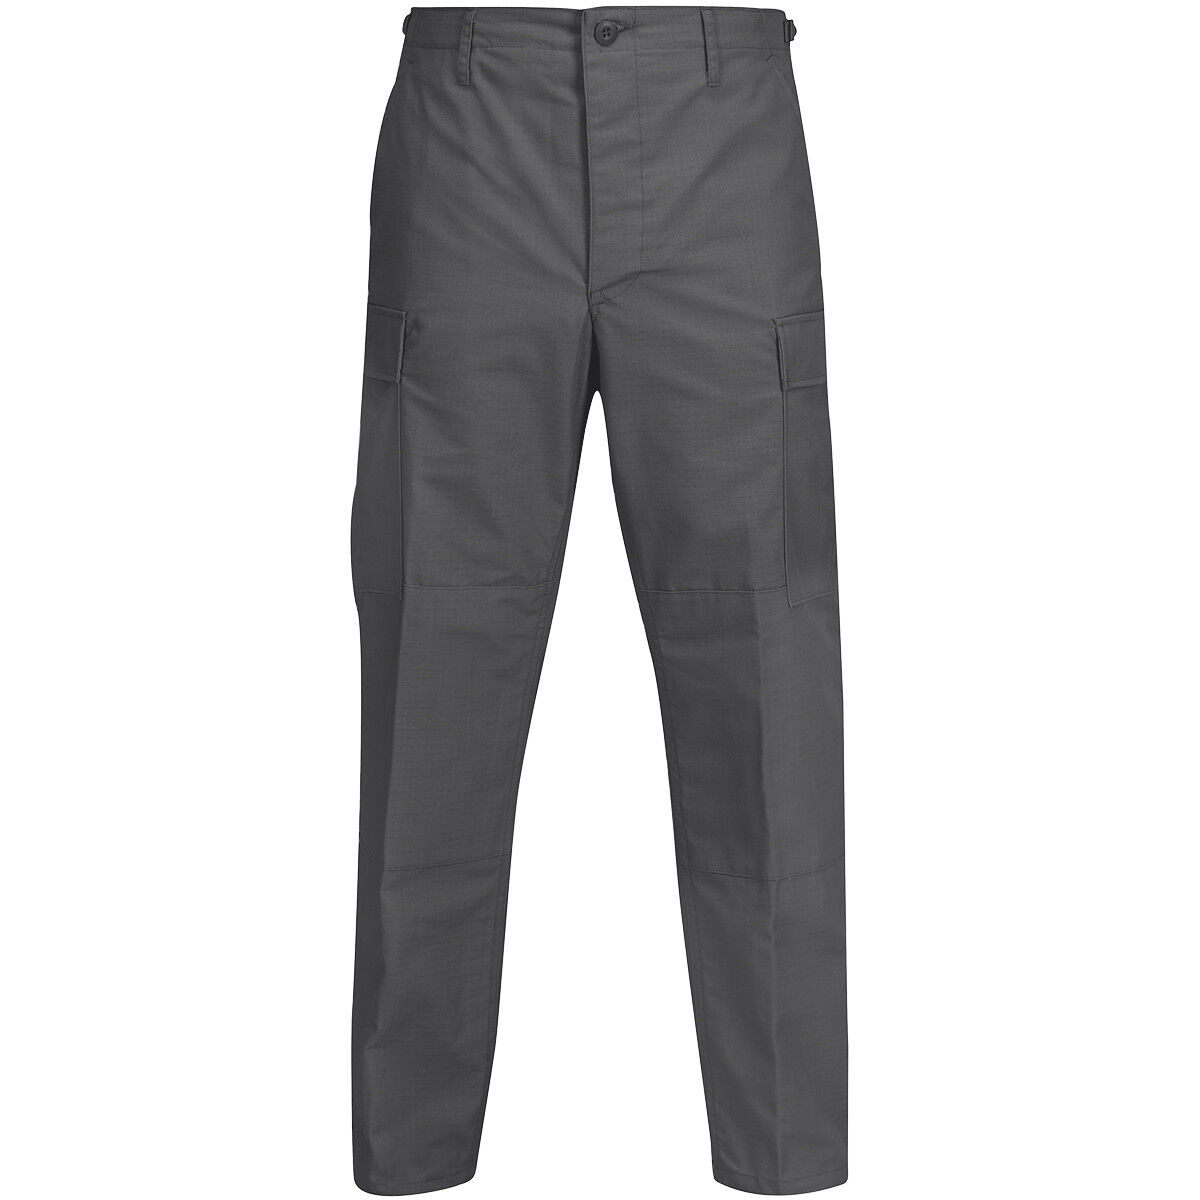 Propper BDU Trousers Button Fly Tactical Duty Mens Army Ripstop Pants Dark Grey